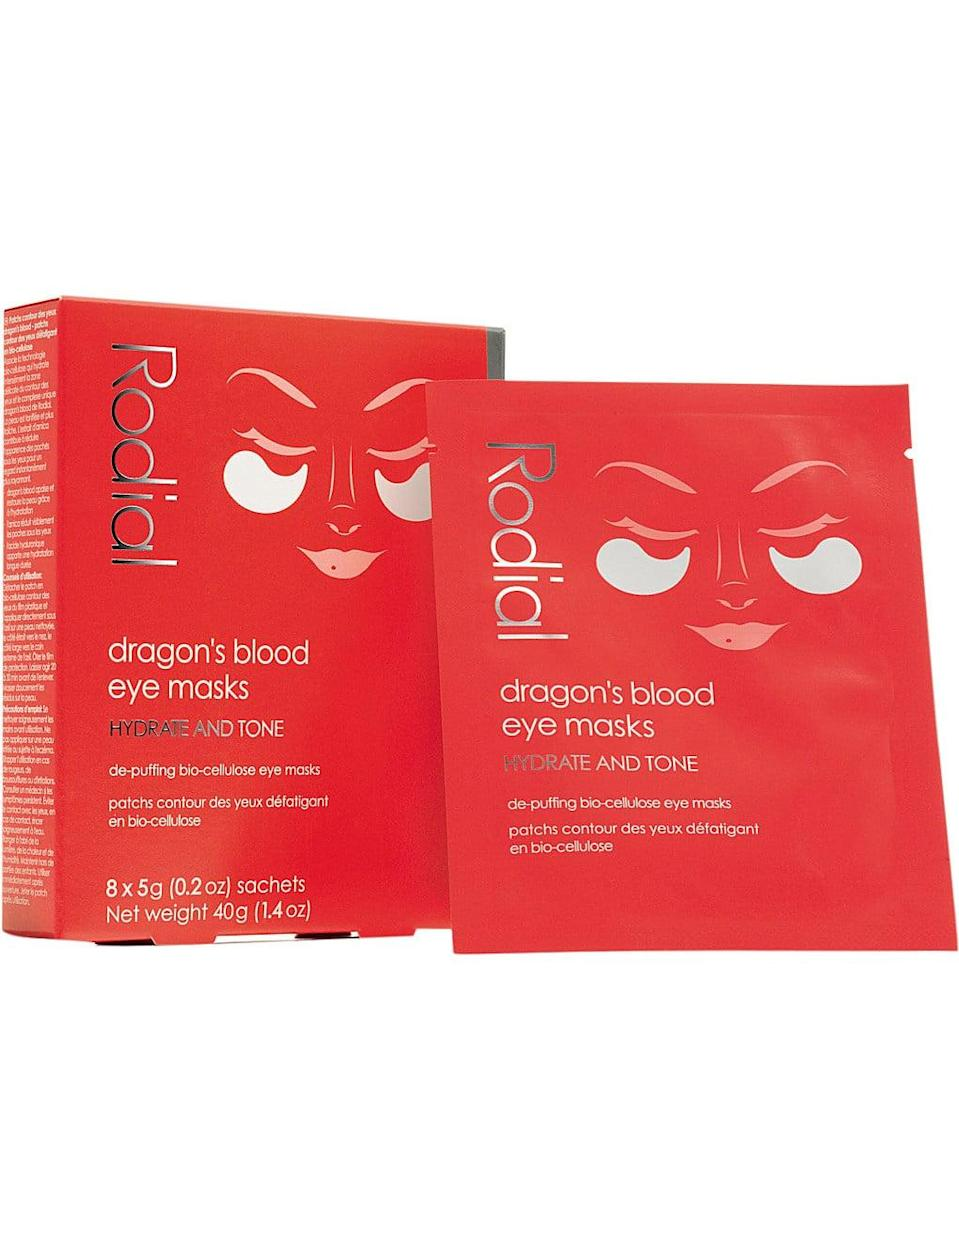 """<p>Look past the creepy name: these <span>Rodial Dragon's Blood Eye Masks</span> ($49) are what dreams, not nightmares, are made of. The """"dragon's blood"""" in question is actually sap from the Croton lechleri tree, which <a href=""""https://www.ncbi.nlm.nih.gov/pubmed/14736360"""" class=""""link rapid-noclick-resp"""" rel=""""nofollow noopener"""" target=""""_blank"""" data-ylk=""""slk:studies have shown"""">studies have shown</a> works as a natural deswelling agent. I learned this firsthand when a quarter-size dollop of shampoo got stuck in my eye and left the area super red. I slapped on one of these bad boys and felt the irritation wither away. Just call me the mother of dragons.</p>"""